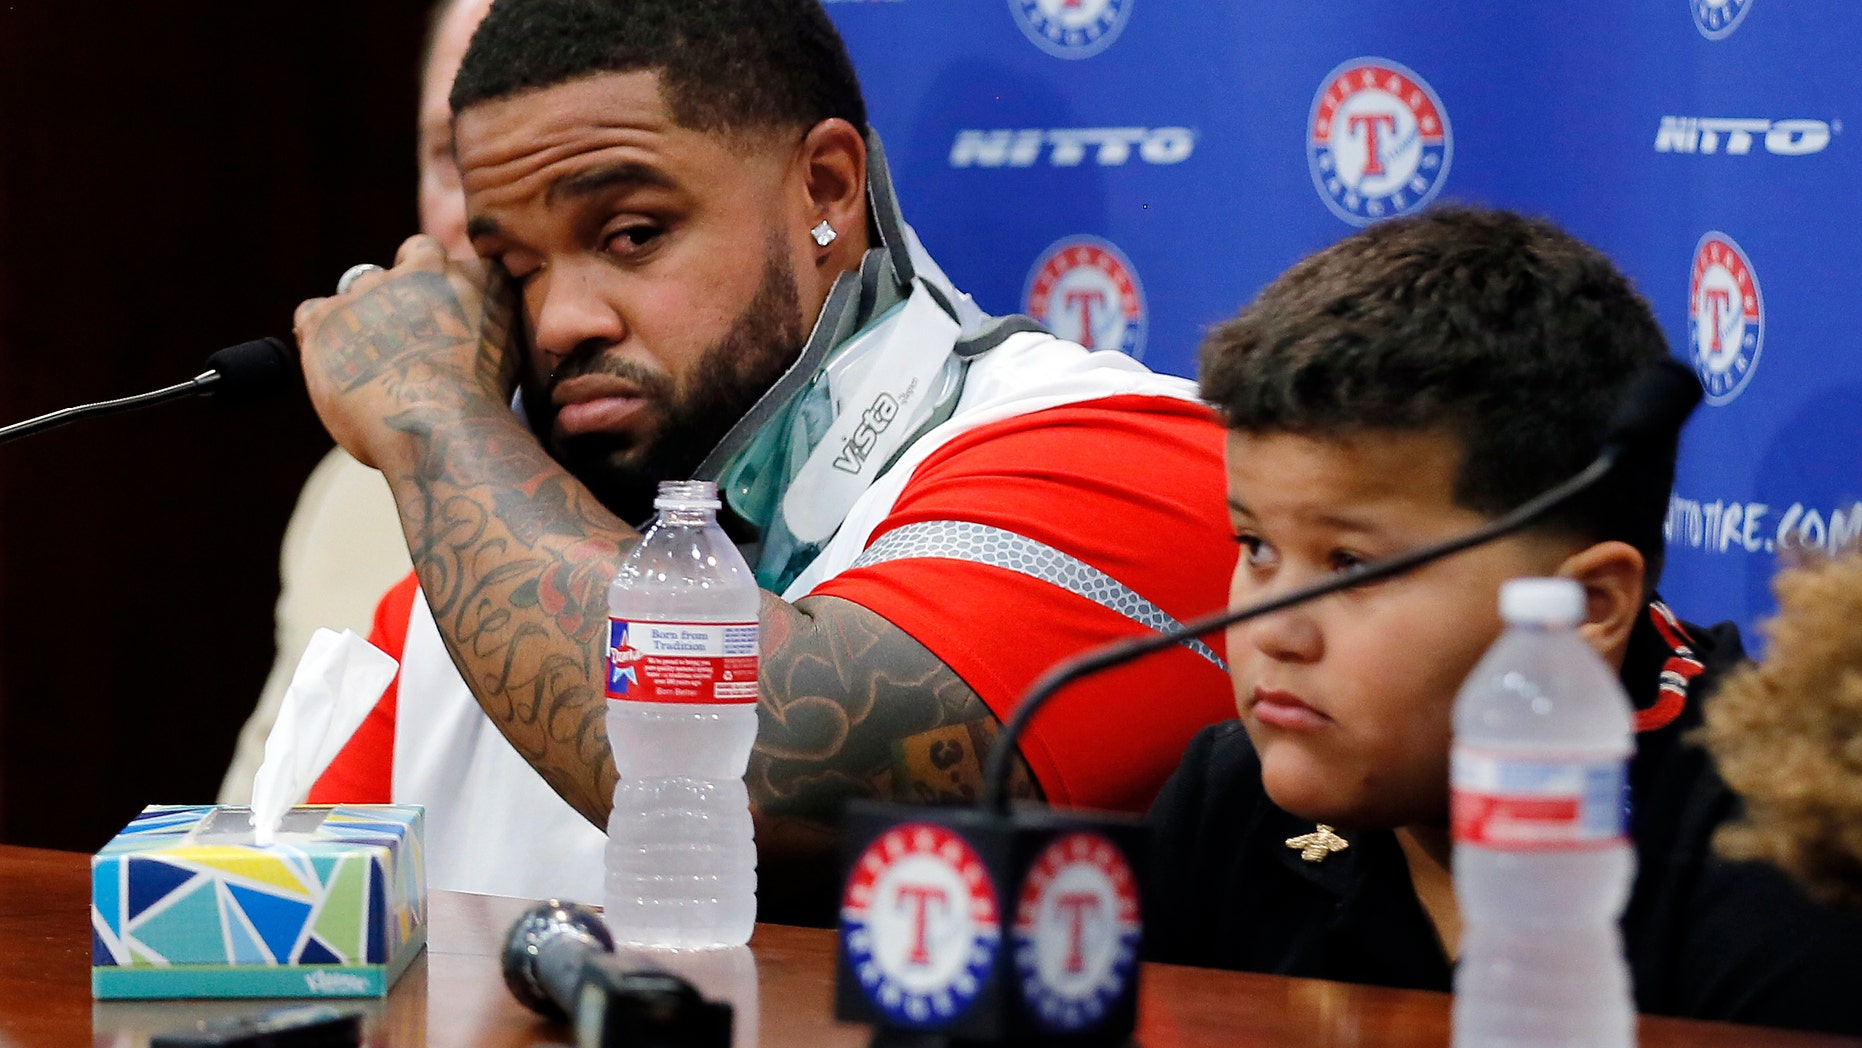 The Texas Rangers' Prince Fielder wipes his eyes as he sits by his son Haven during a news conference.